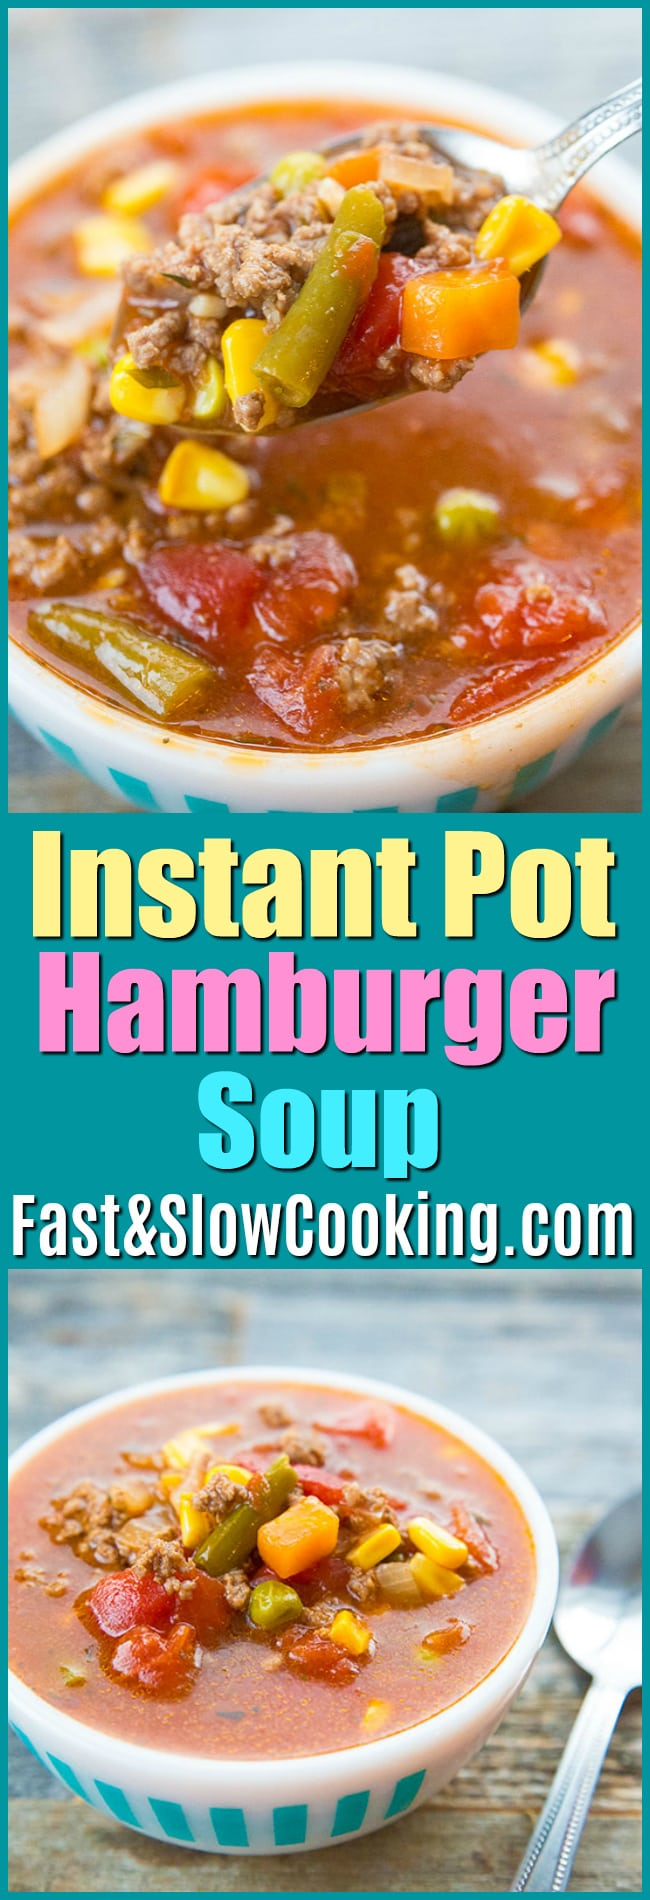 This Instant Pot Hamburger Soup is a super fast way to make the classic soup! You usually make it on the stove top or in the crockpot but thanks to the invention of the Instant Pot you can use your favourite pressure cooker to whip it up fast! #instantpot #soup #recipe